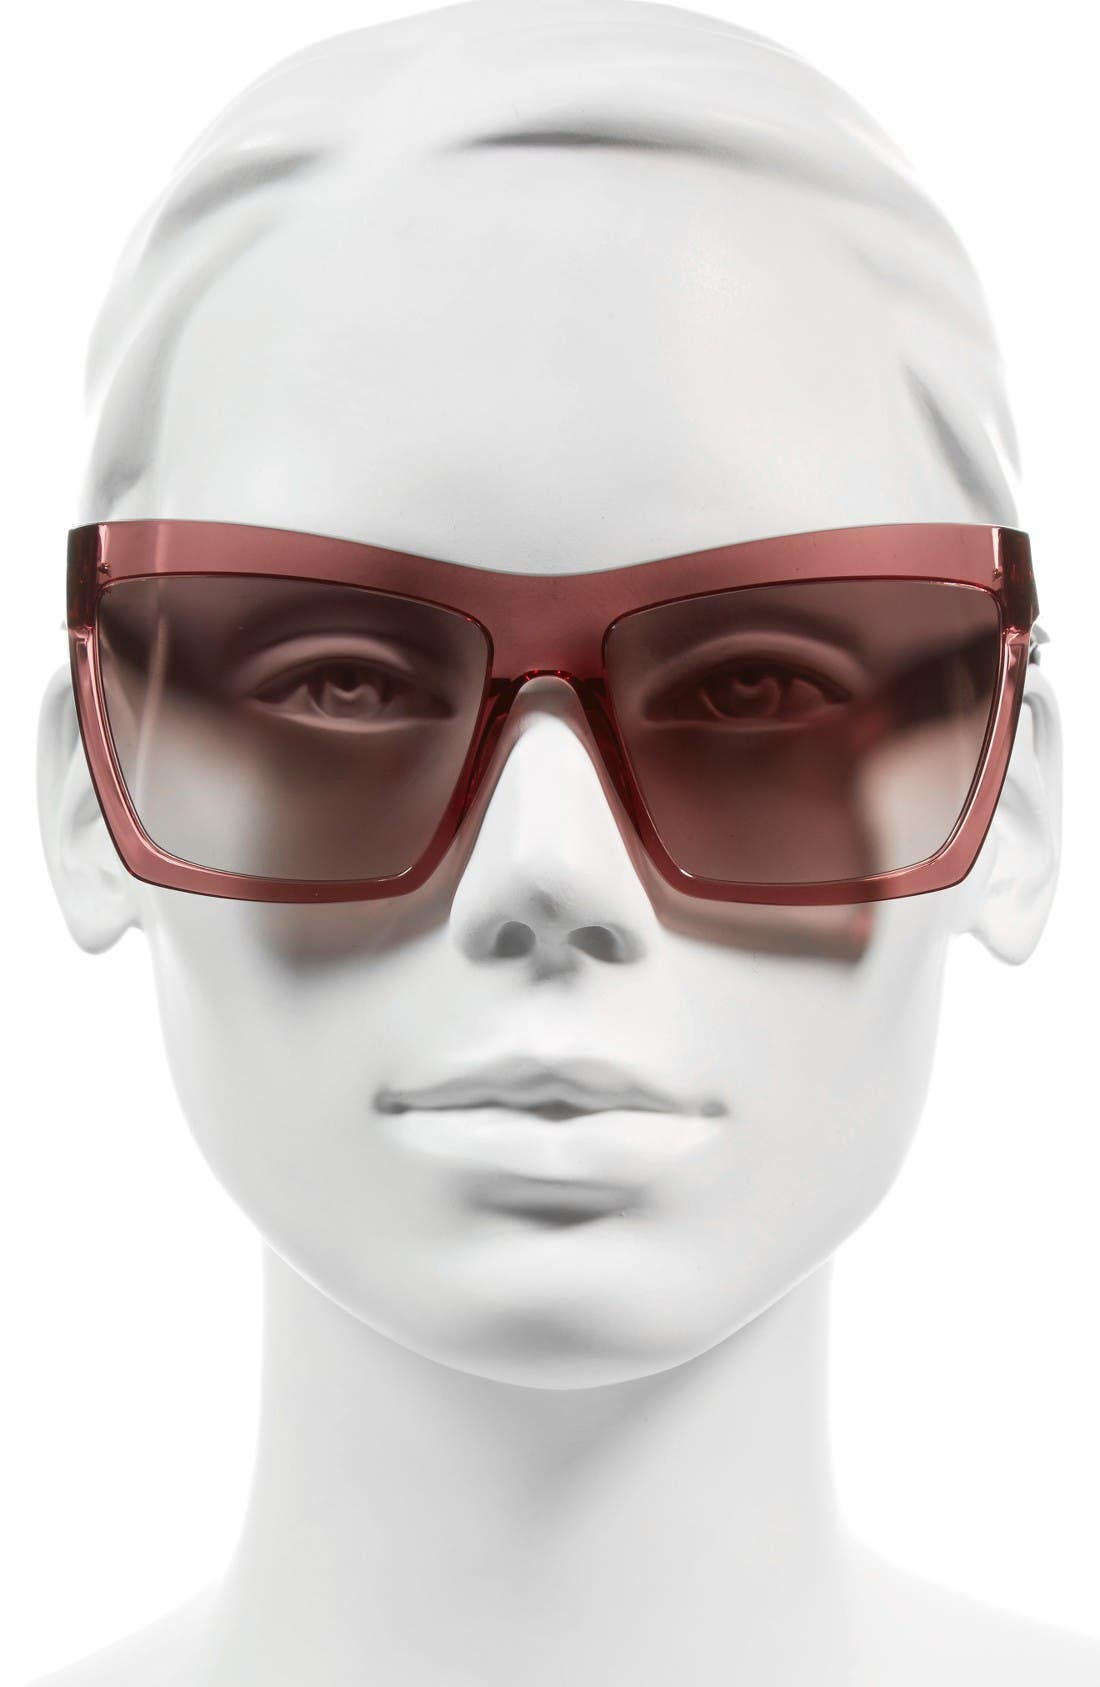 60mm Oversize Sunglasses,                             Alternate thumbnail 2, color,                             Red/ Green/ Silver/ Red